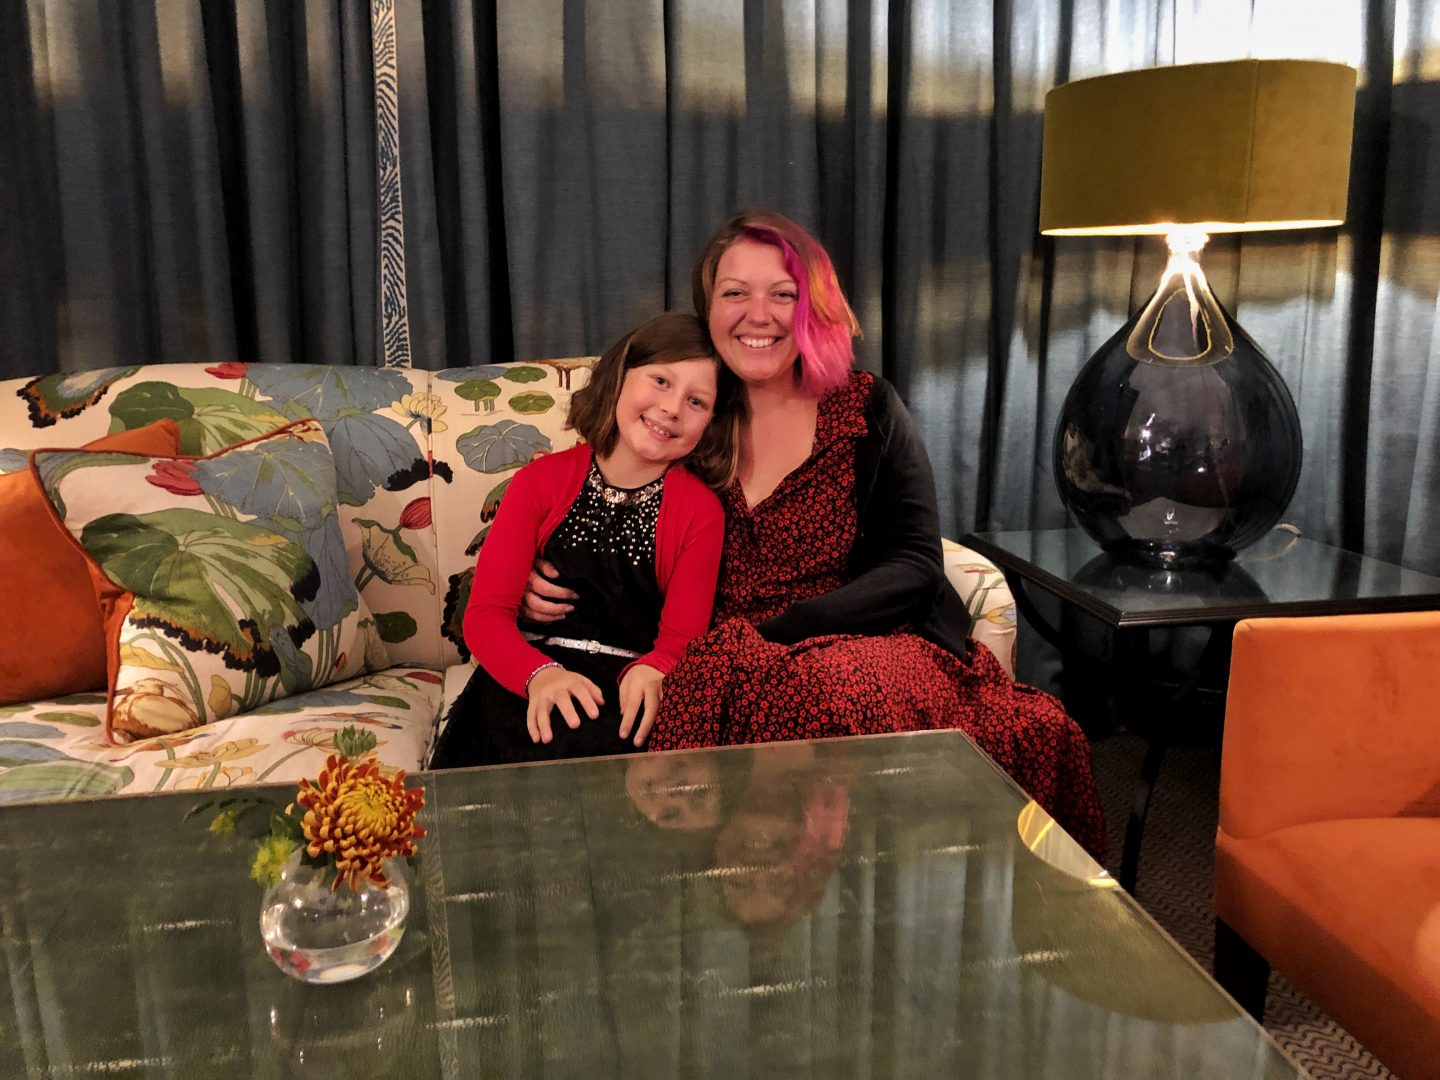 An image of my daughter and I sitting together on a beautifully patterned sofa in the lounge at the Lords of the Manor hotel. I'm wearing a black dress covered in tiny red flowers and my daughter wears a black dress covered in sparkles and a red cardigan. We are both smiling.